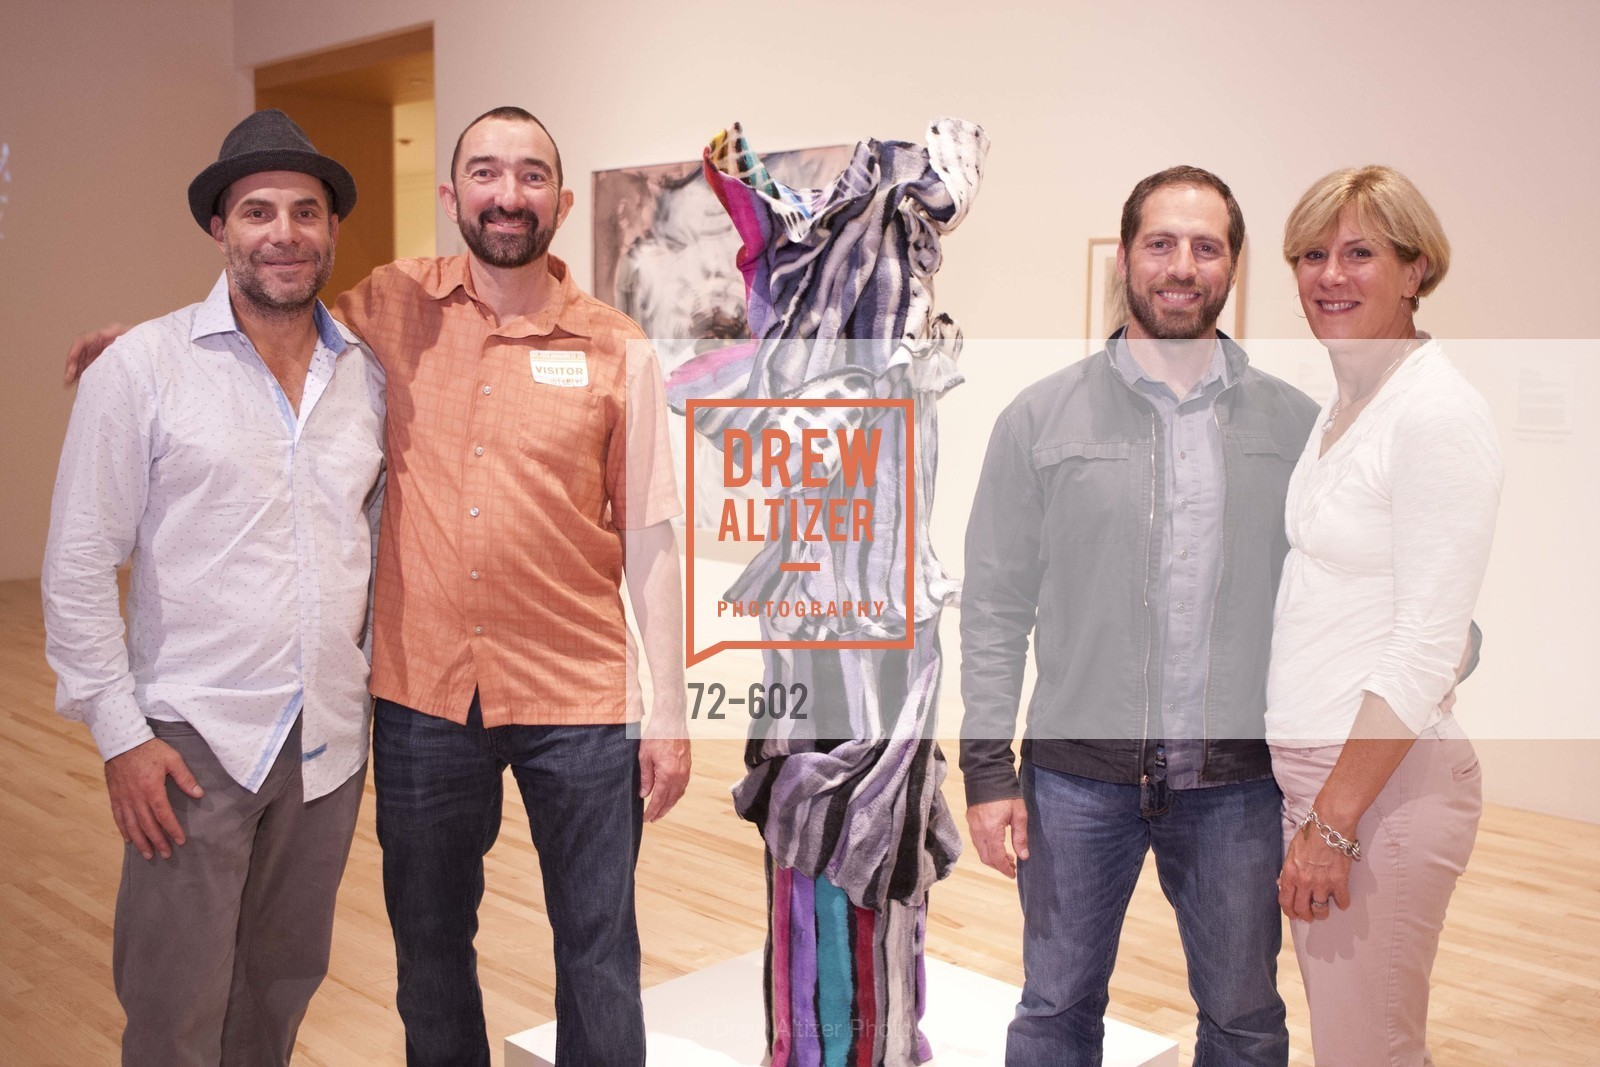 Aaron Gladman, Josh Baxter, Josh Holtzman, Beverly Aabjerb, SAN JOSE MUSEUM OF ART Fall Reception Opening, US, October 8th, 2014,Drew Altizer, Drew Altizer Photography, full-service agency, private events, San Francisco photographer, photographer california